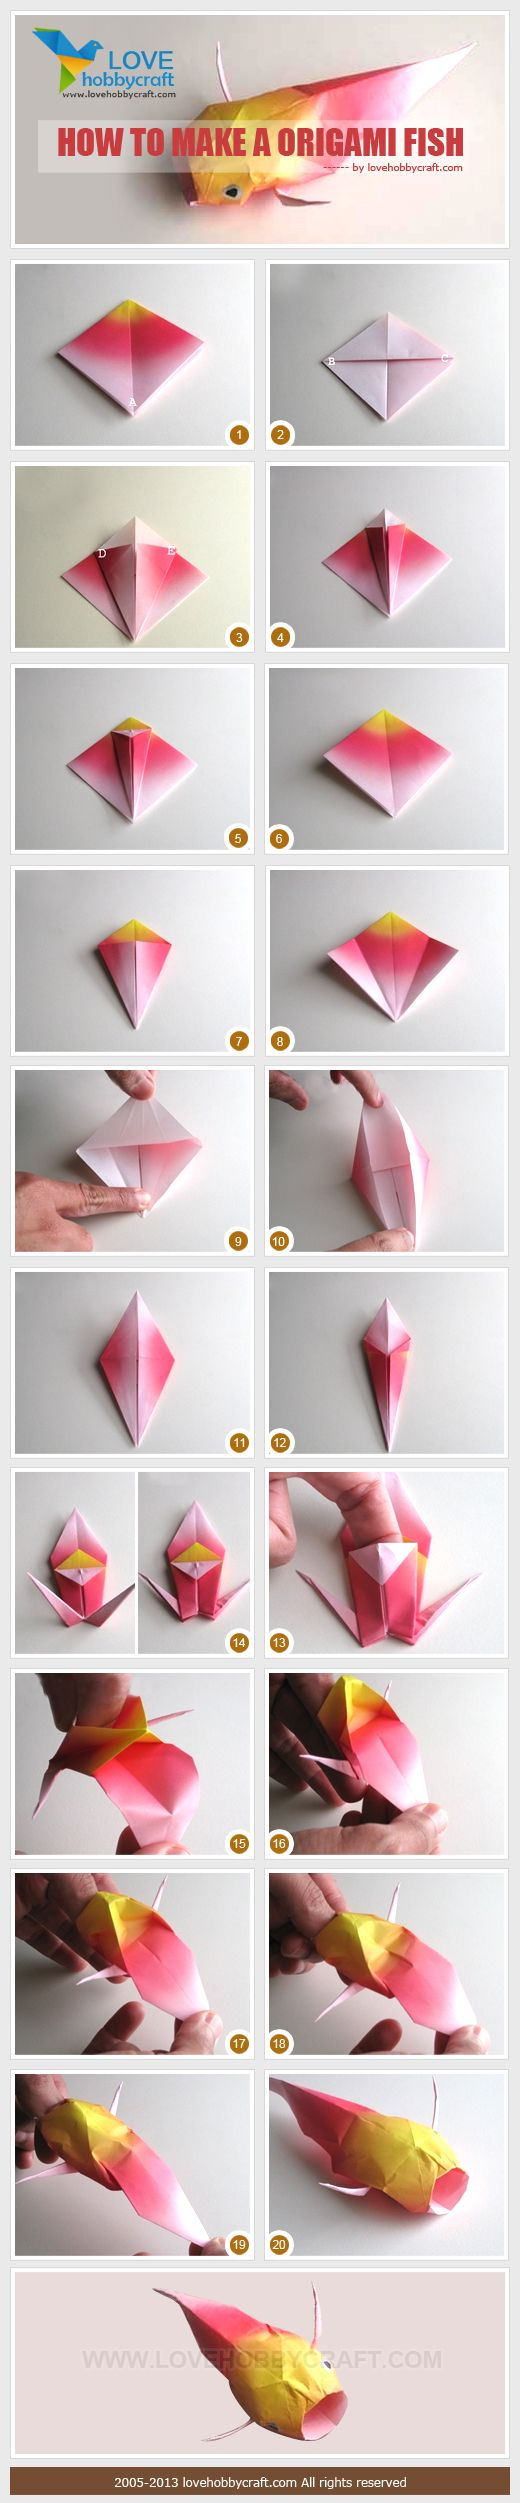 25 best ideas about origami fish on pinterest origami for Origami koi fish